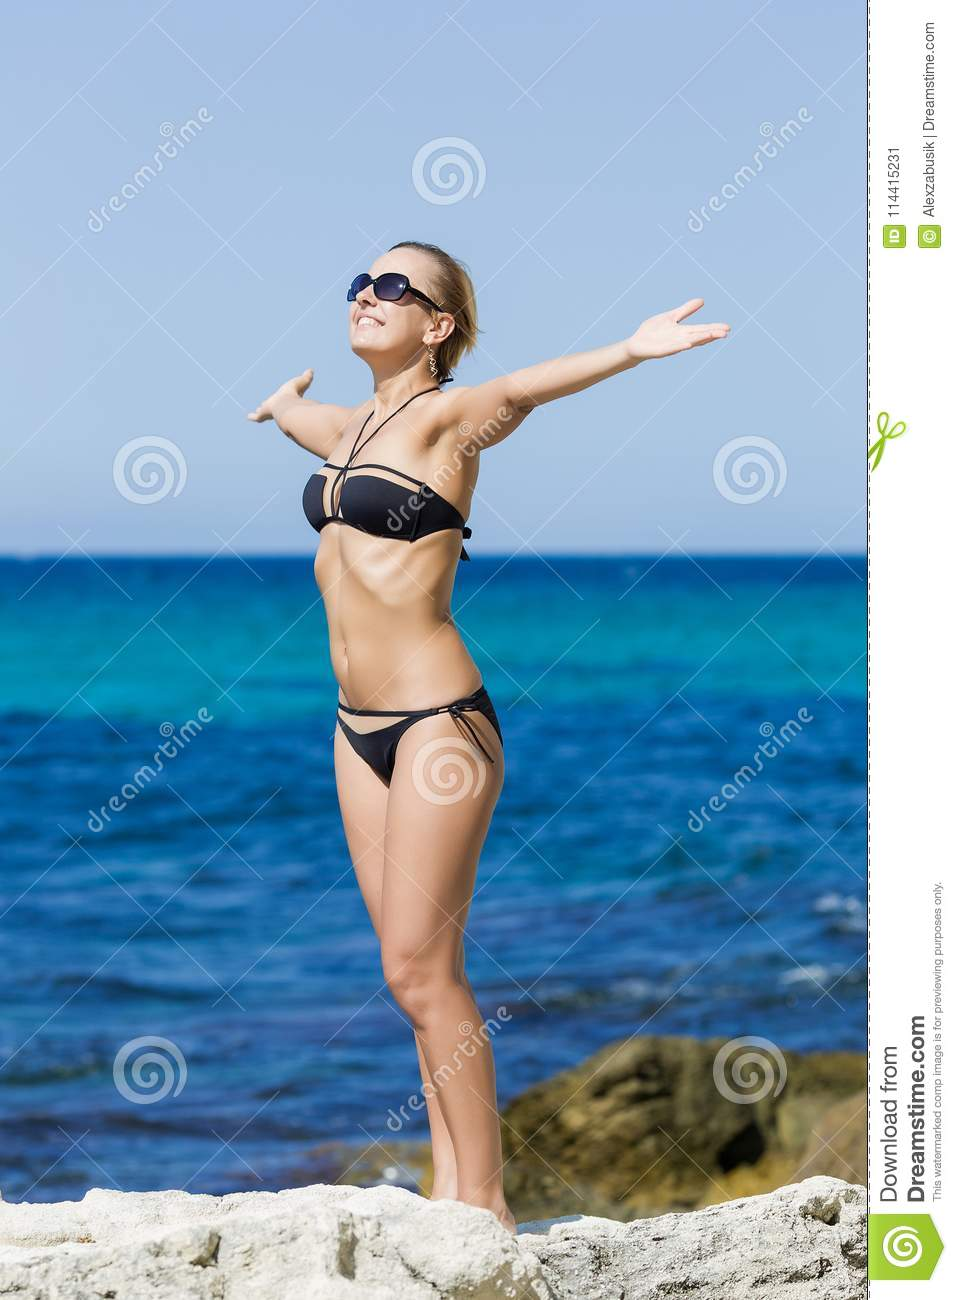 Tanned girl in swimsuit posing with arms outstretched against se